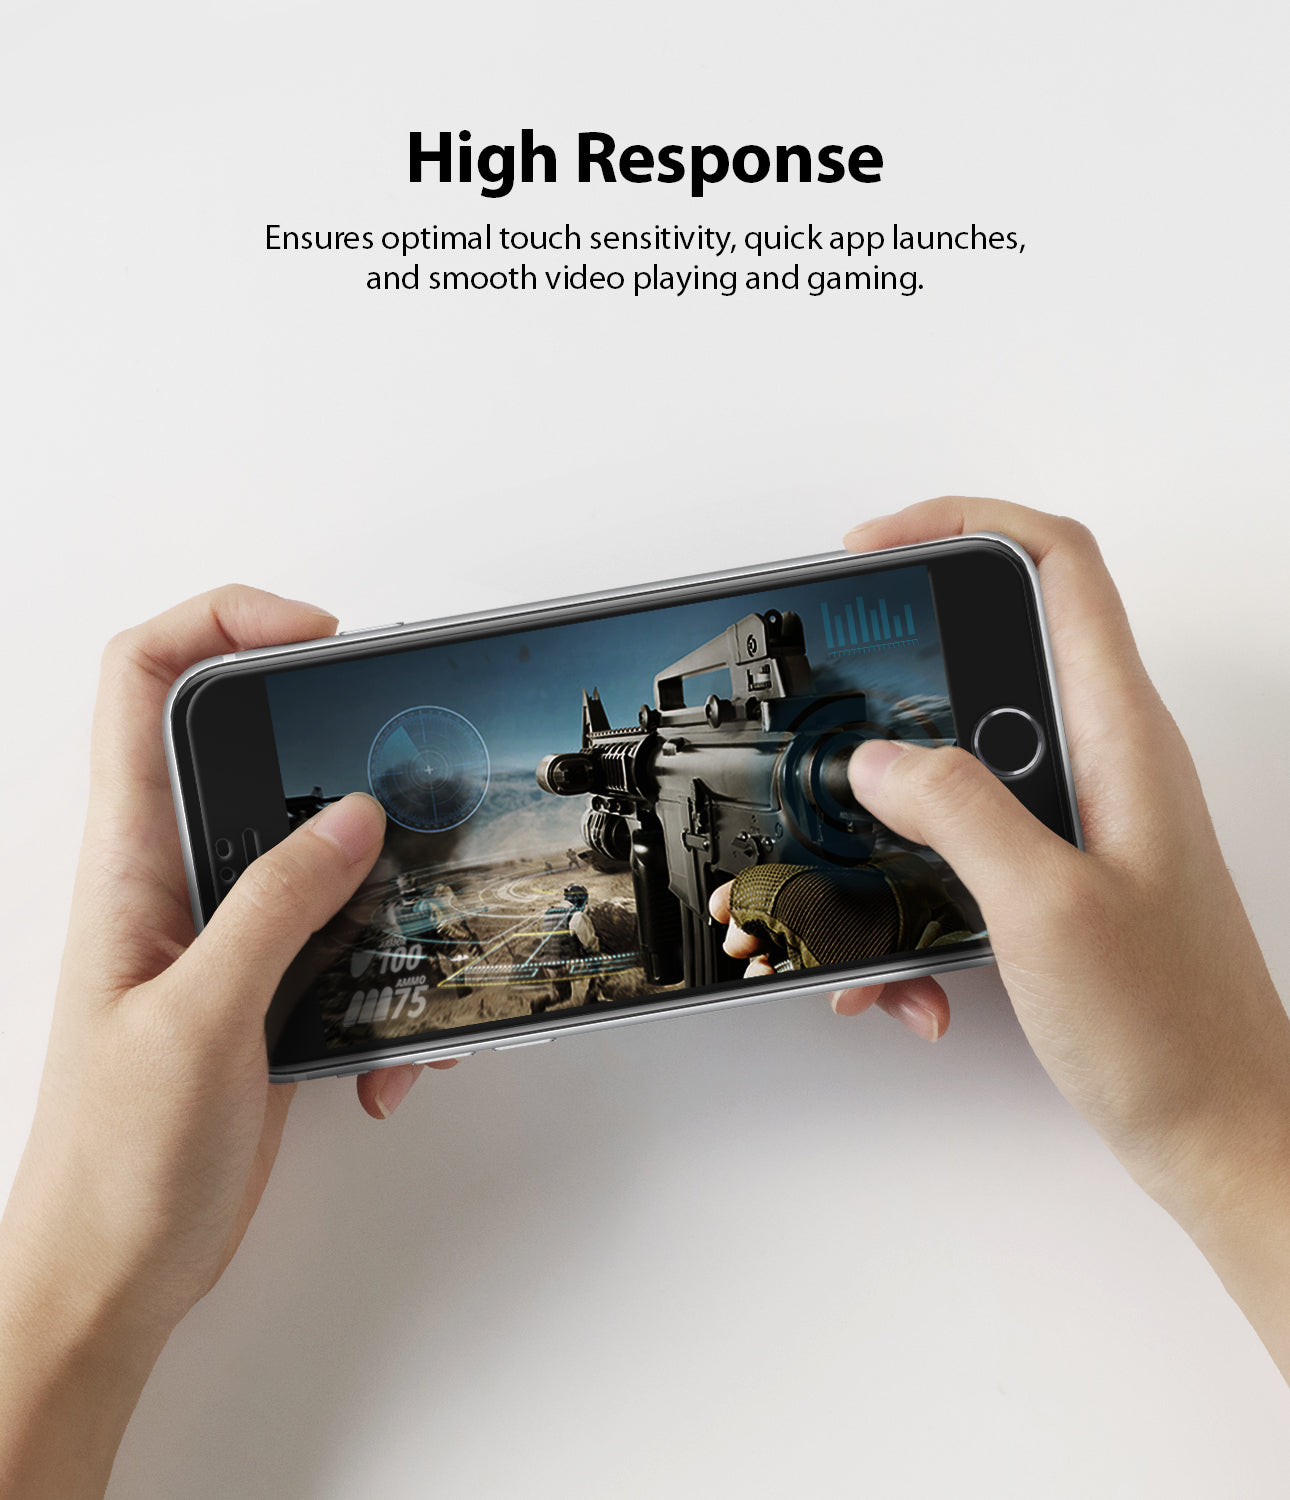 high response to ensure optimal touch sensitivity